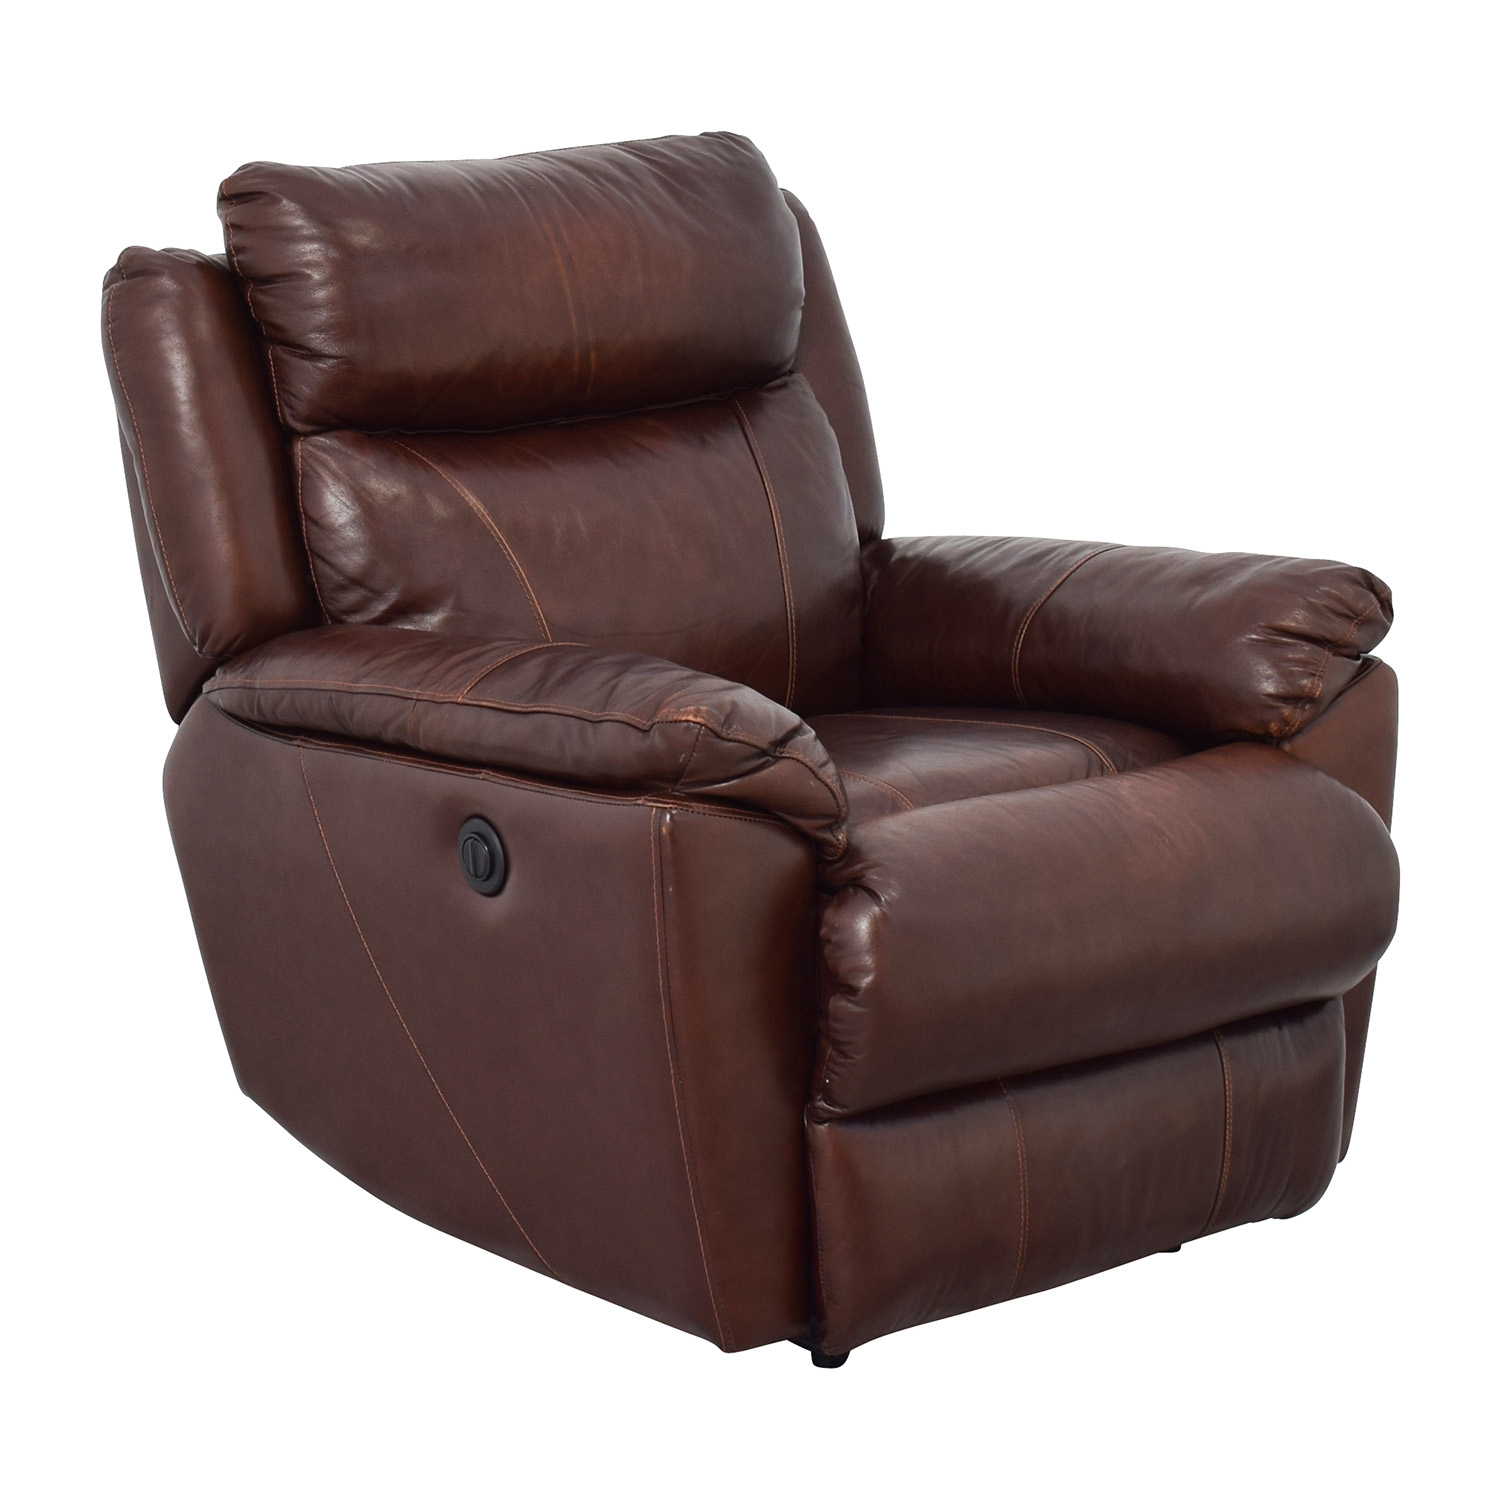 Second Hand Riser Recliner Chair Electric Celebrity